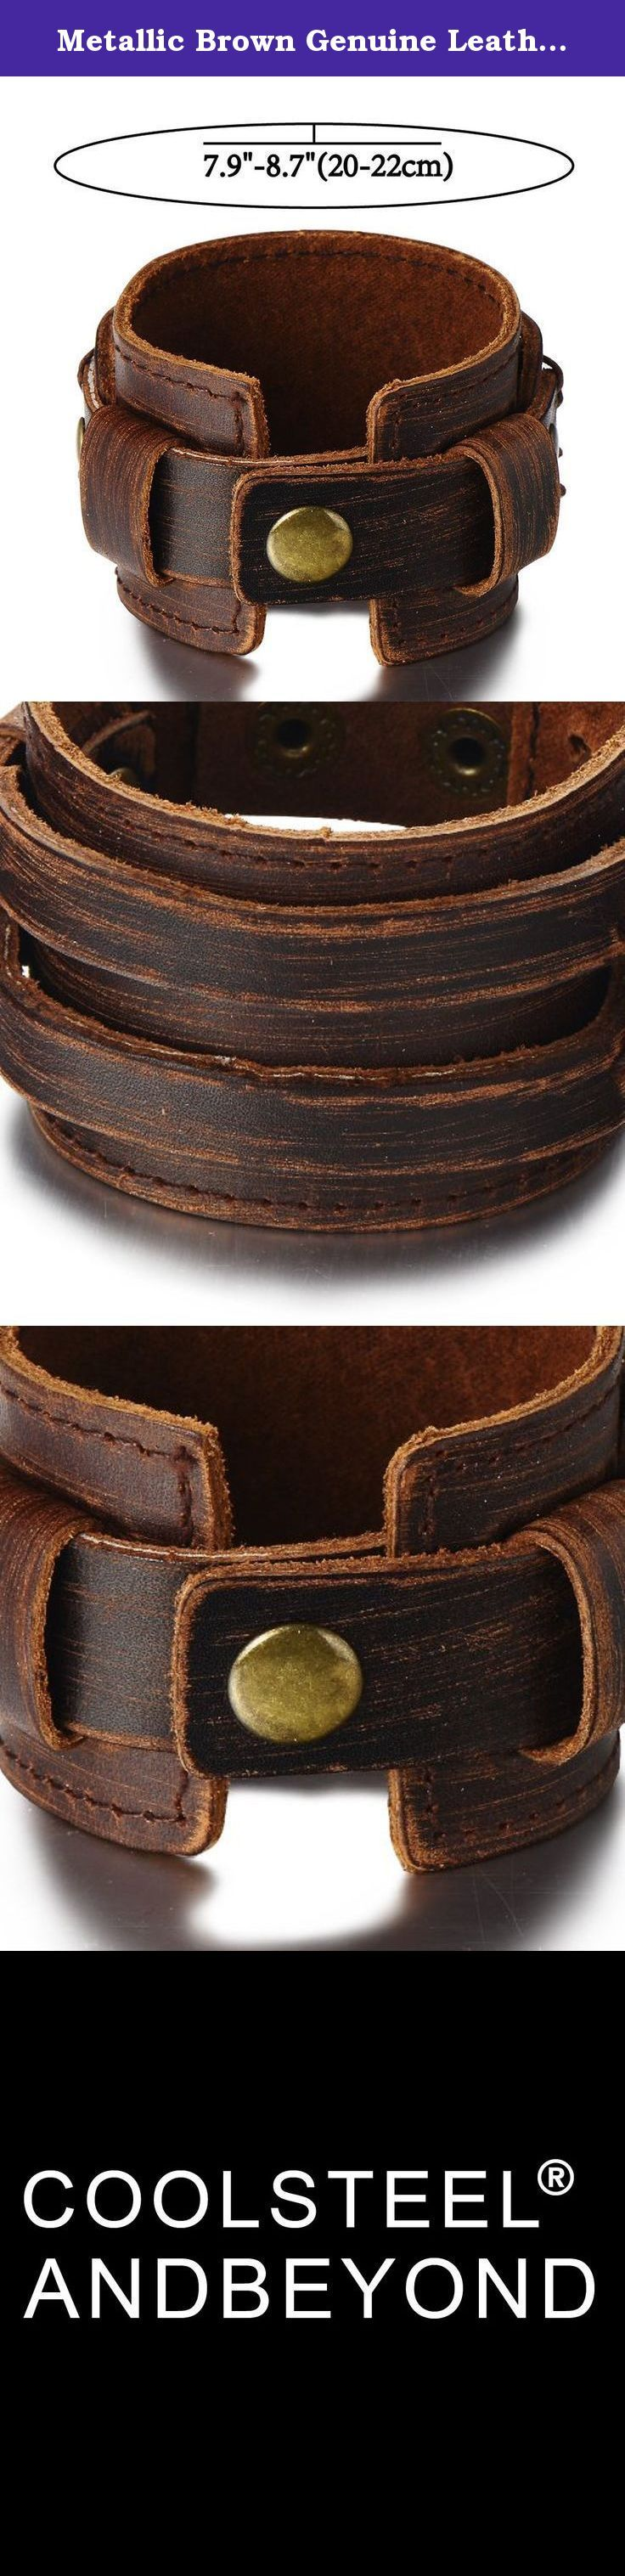 "Metallic Brown Genuine Leather Wristband Mens Wide Leather Bracelet with Snap Button. *Condition: 100% brand new *Metal: Alloy *Leather: Brown Genuine Leather *Clasp: Snap Buttons *Dimension:4.4CM (1.7"") wide x 20-22CM (7.9""-8.7"") long x 0.5CM (0.19"") thick; *Weight: 20.6g *Package: Bag with Brand Name COOLSTEELANDBEYOND ."